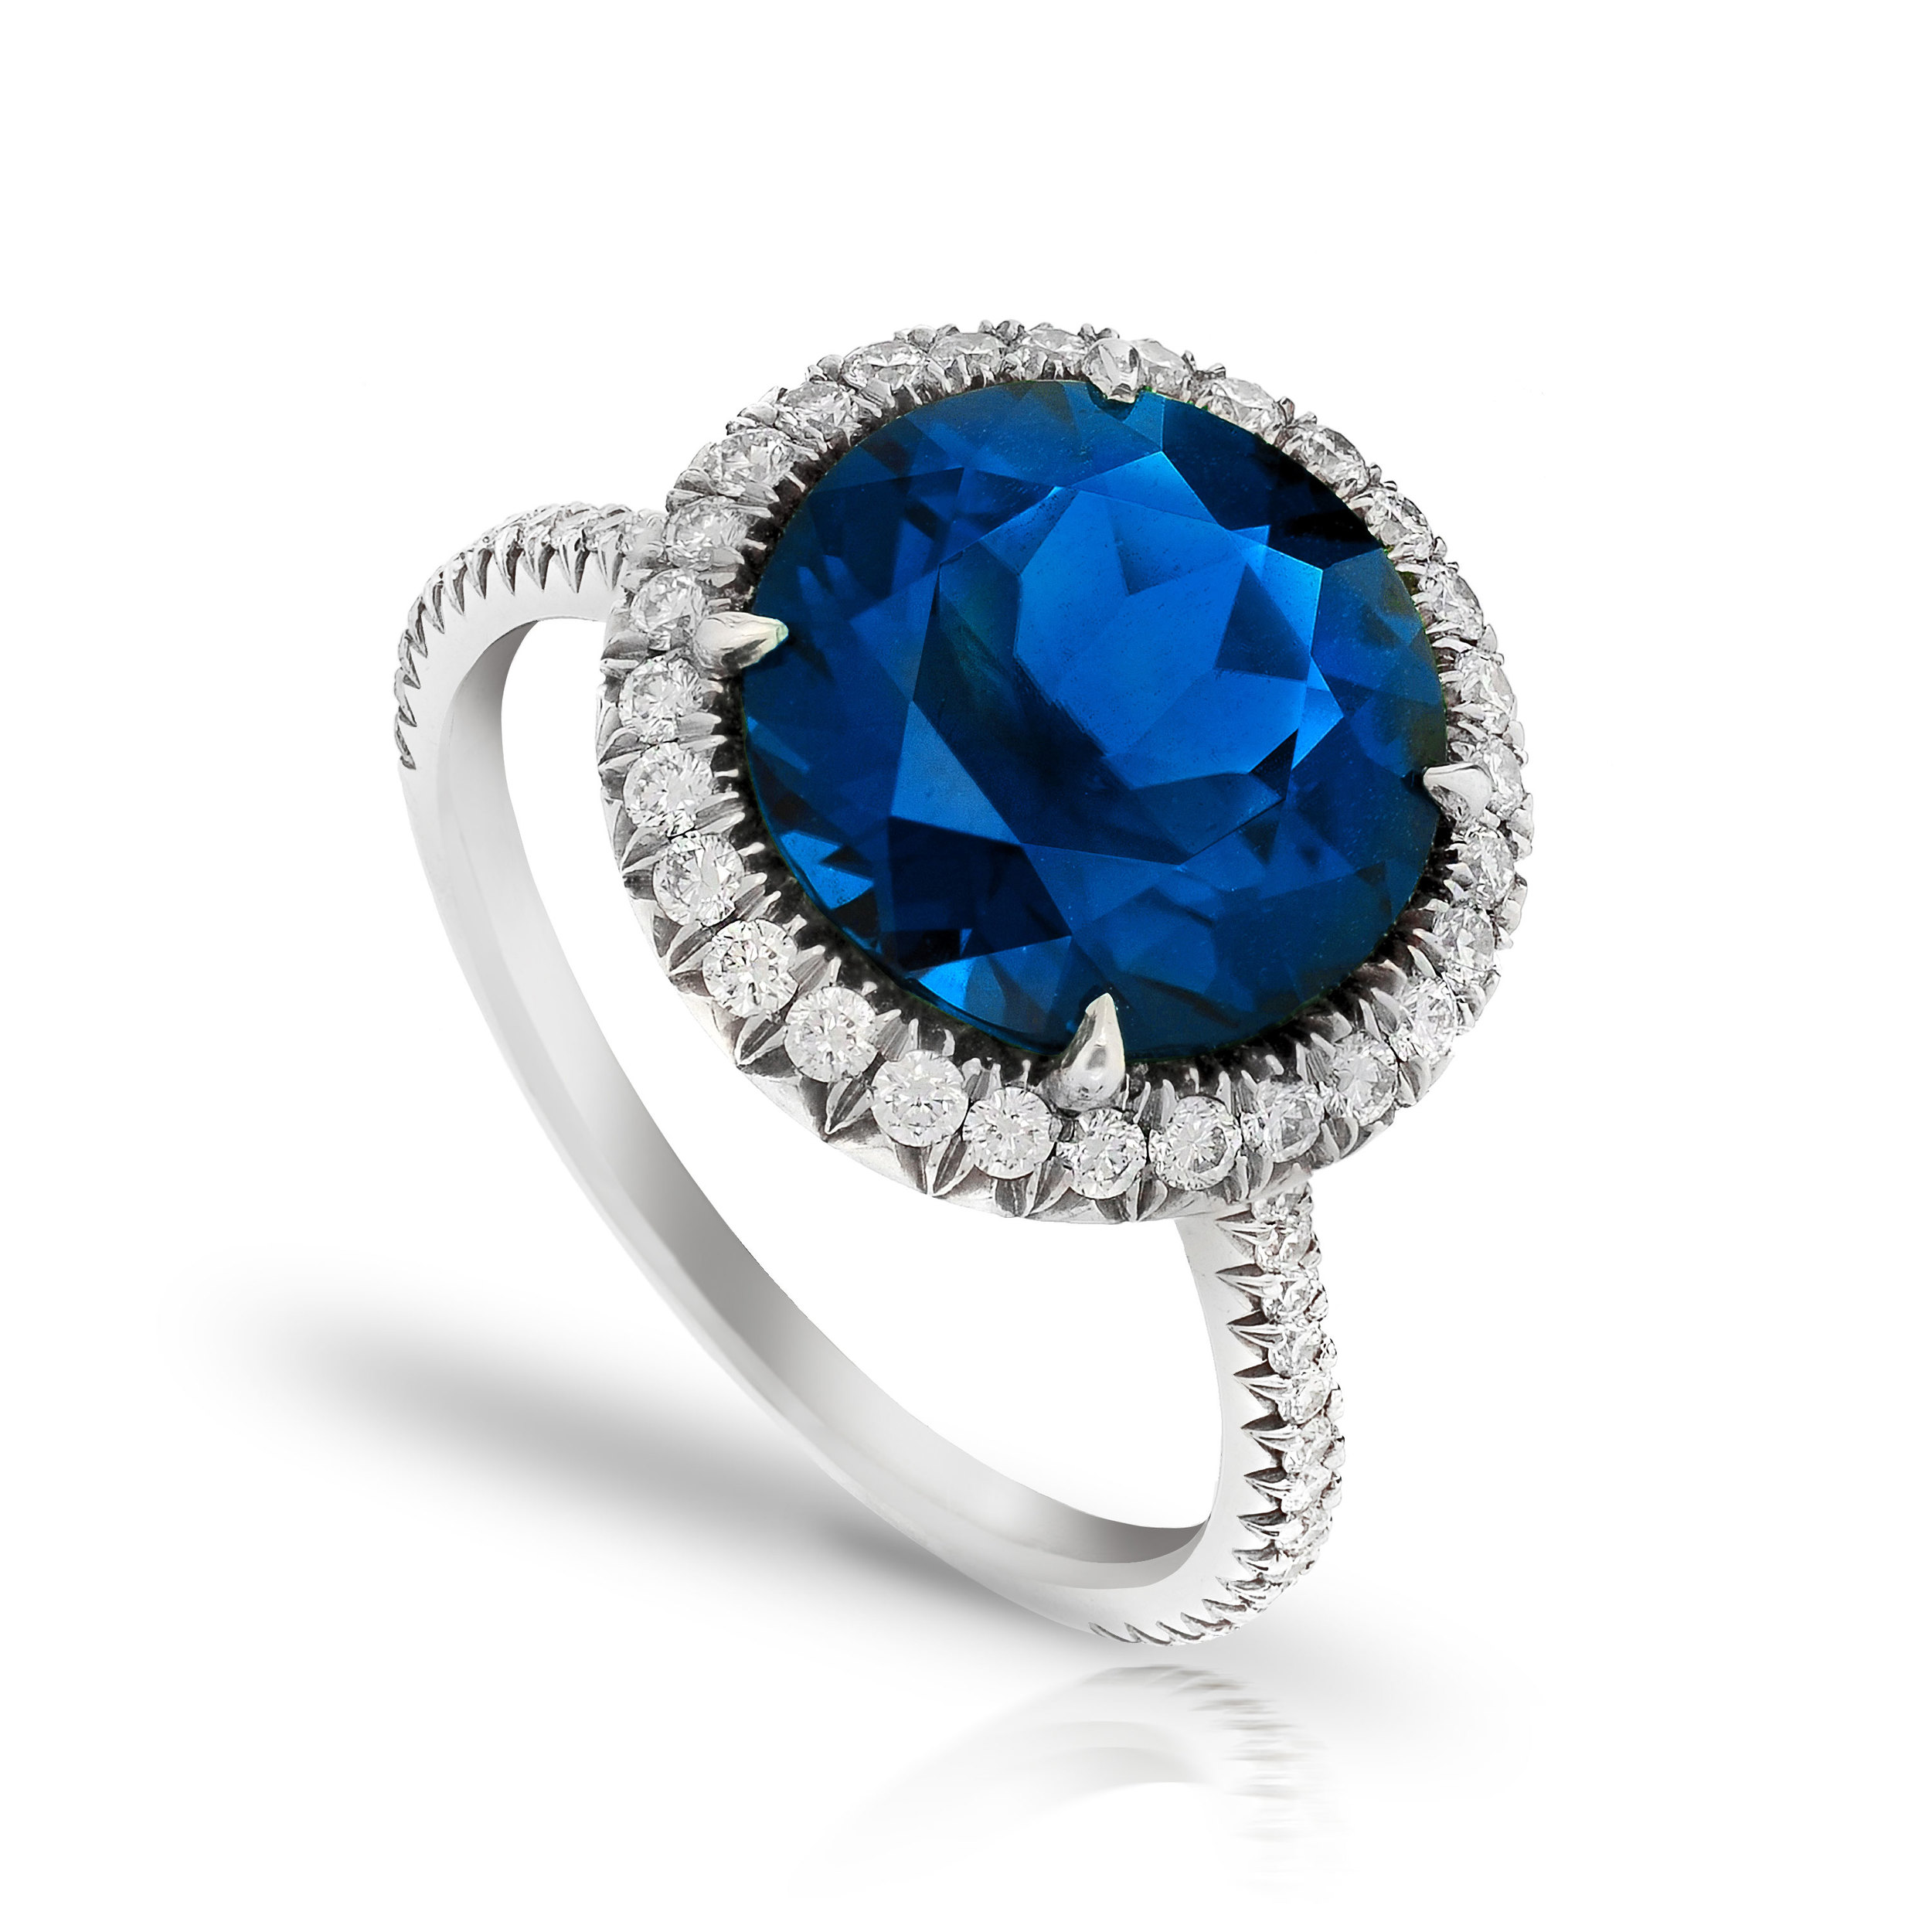 NATURAL SAPPHIRE ROUND CUT IN A RING WITH ANTIQUE CUT DOWN COLORLESS DIAMOND PAVE CRAFTED IN PLATINUM, 5.75 CTW